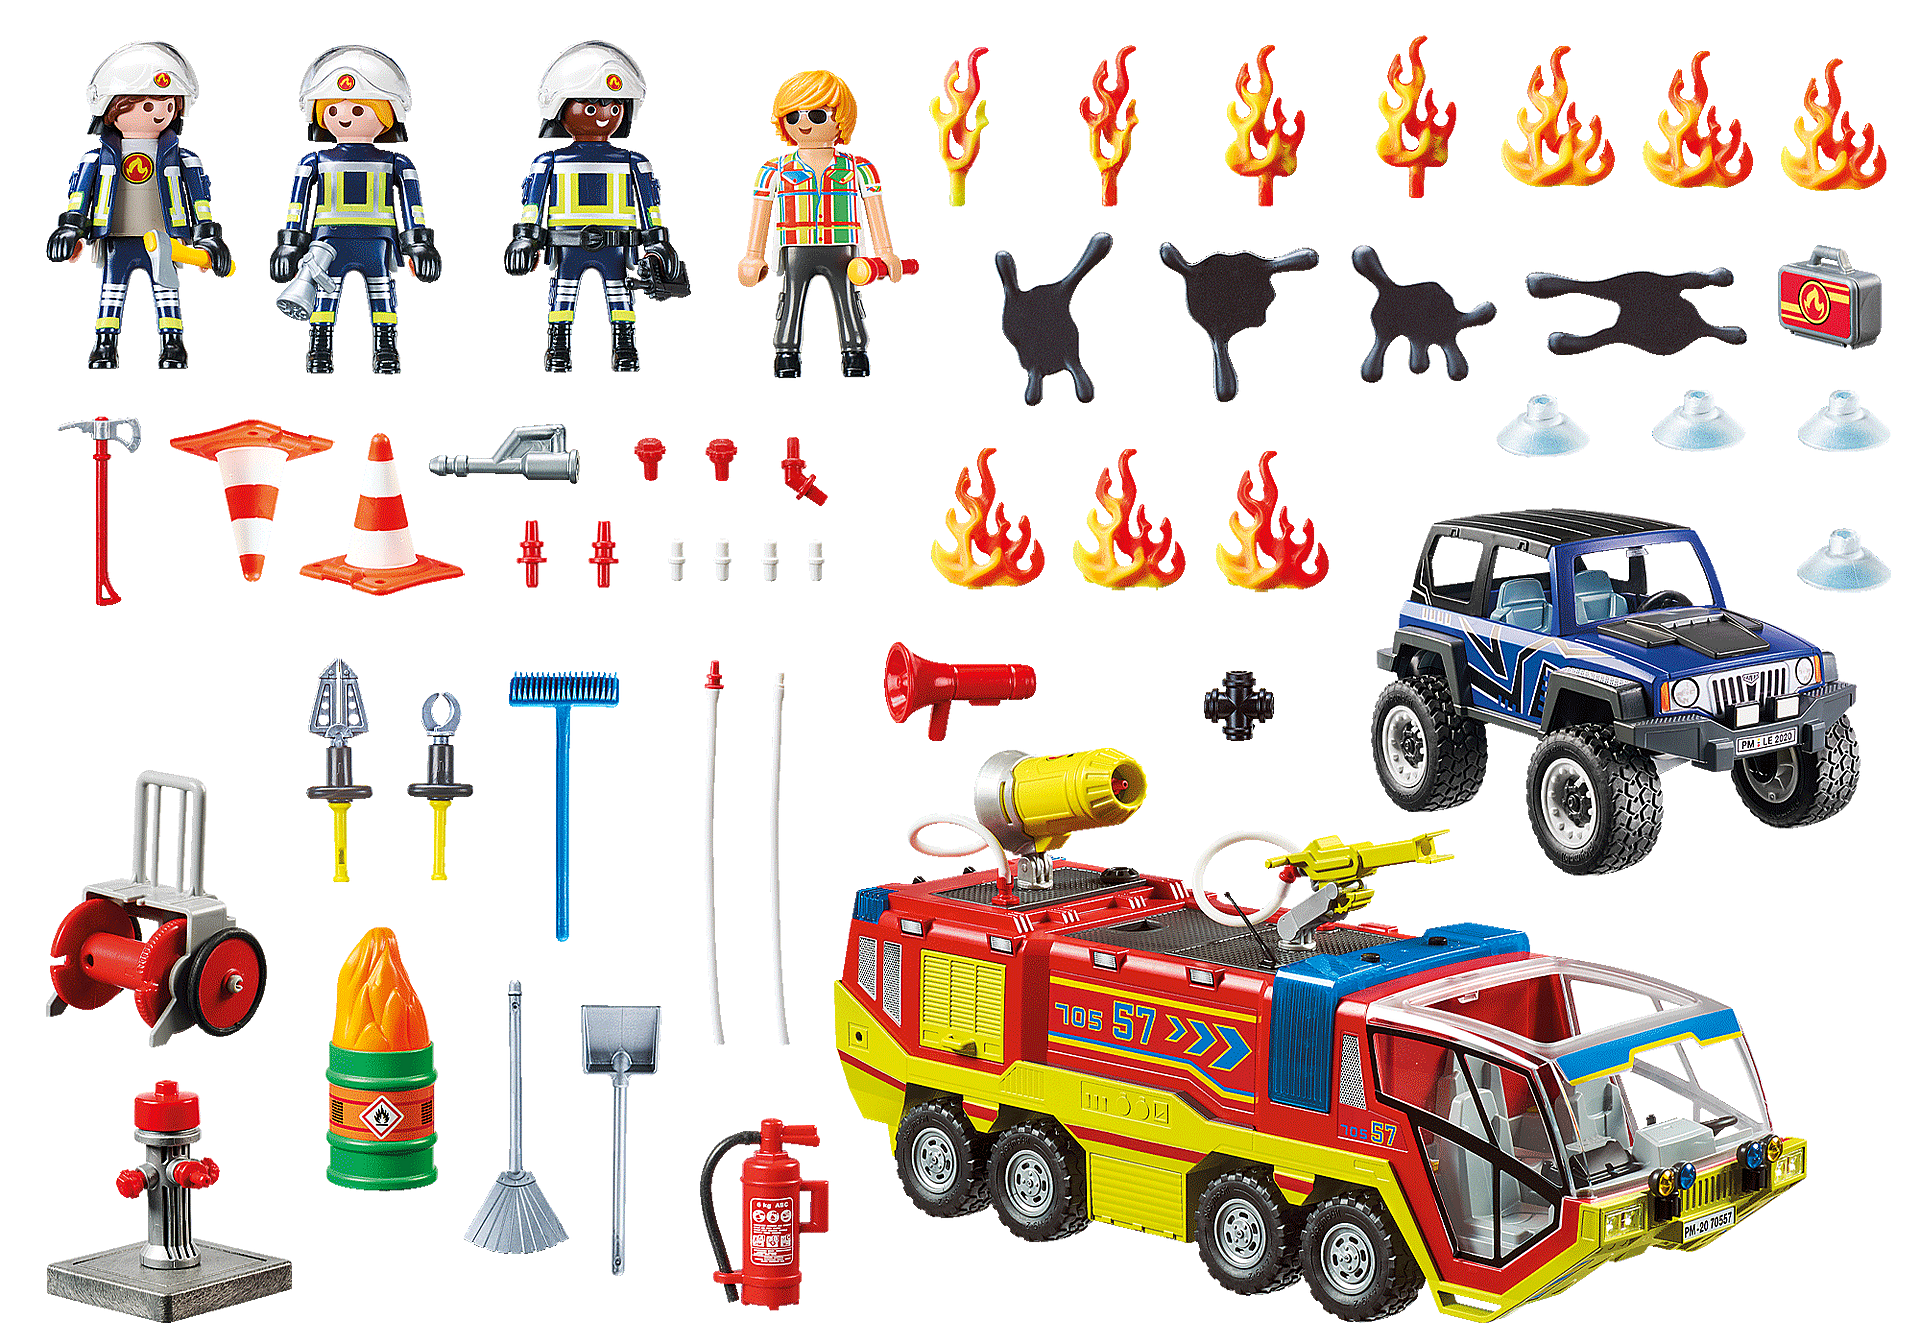 70557 Fire Engine with Truck zoom image3